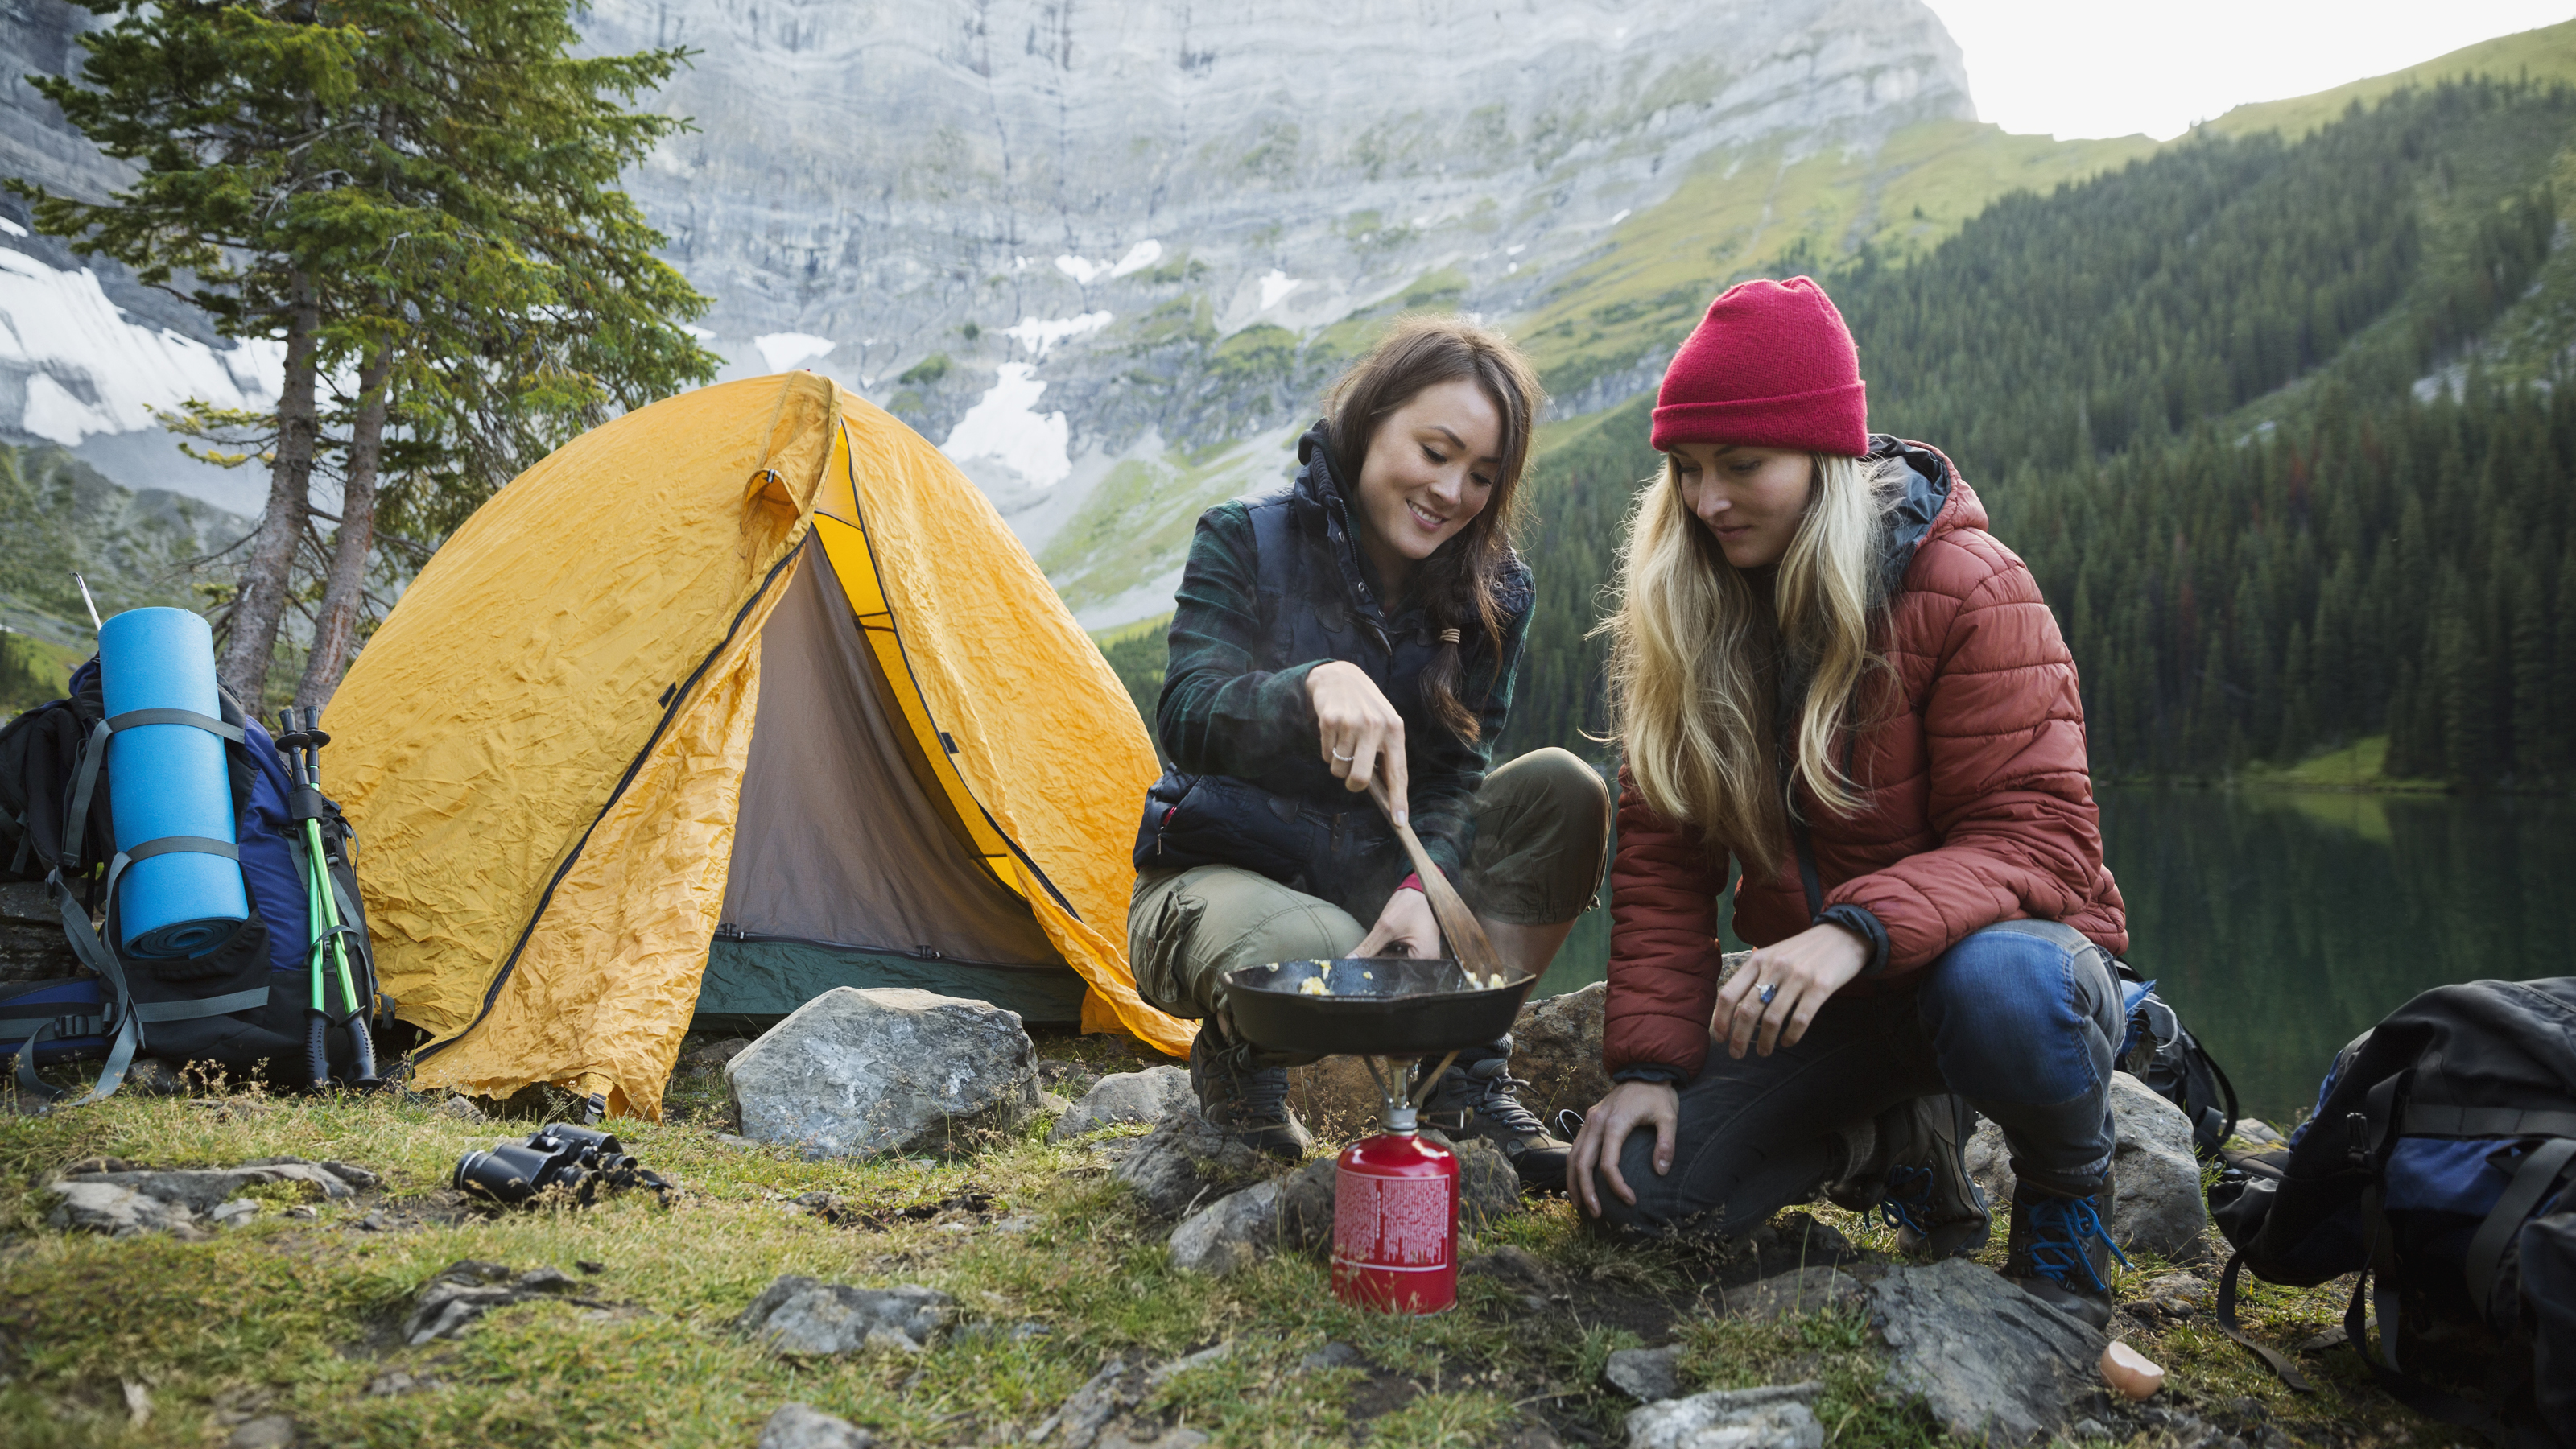 11 best tents 2019 for c&ing on family holidays solo adventures and thru -hiking | T3  sc 1 st  T3.com & 11 best tents 2019: for camping on family holidays solo adventures ...